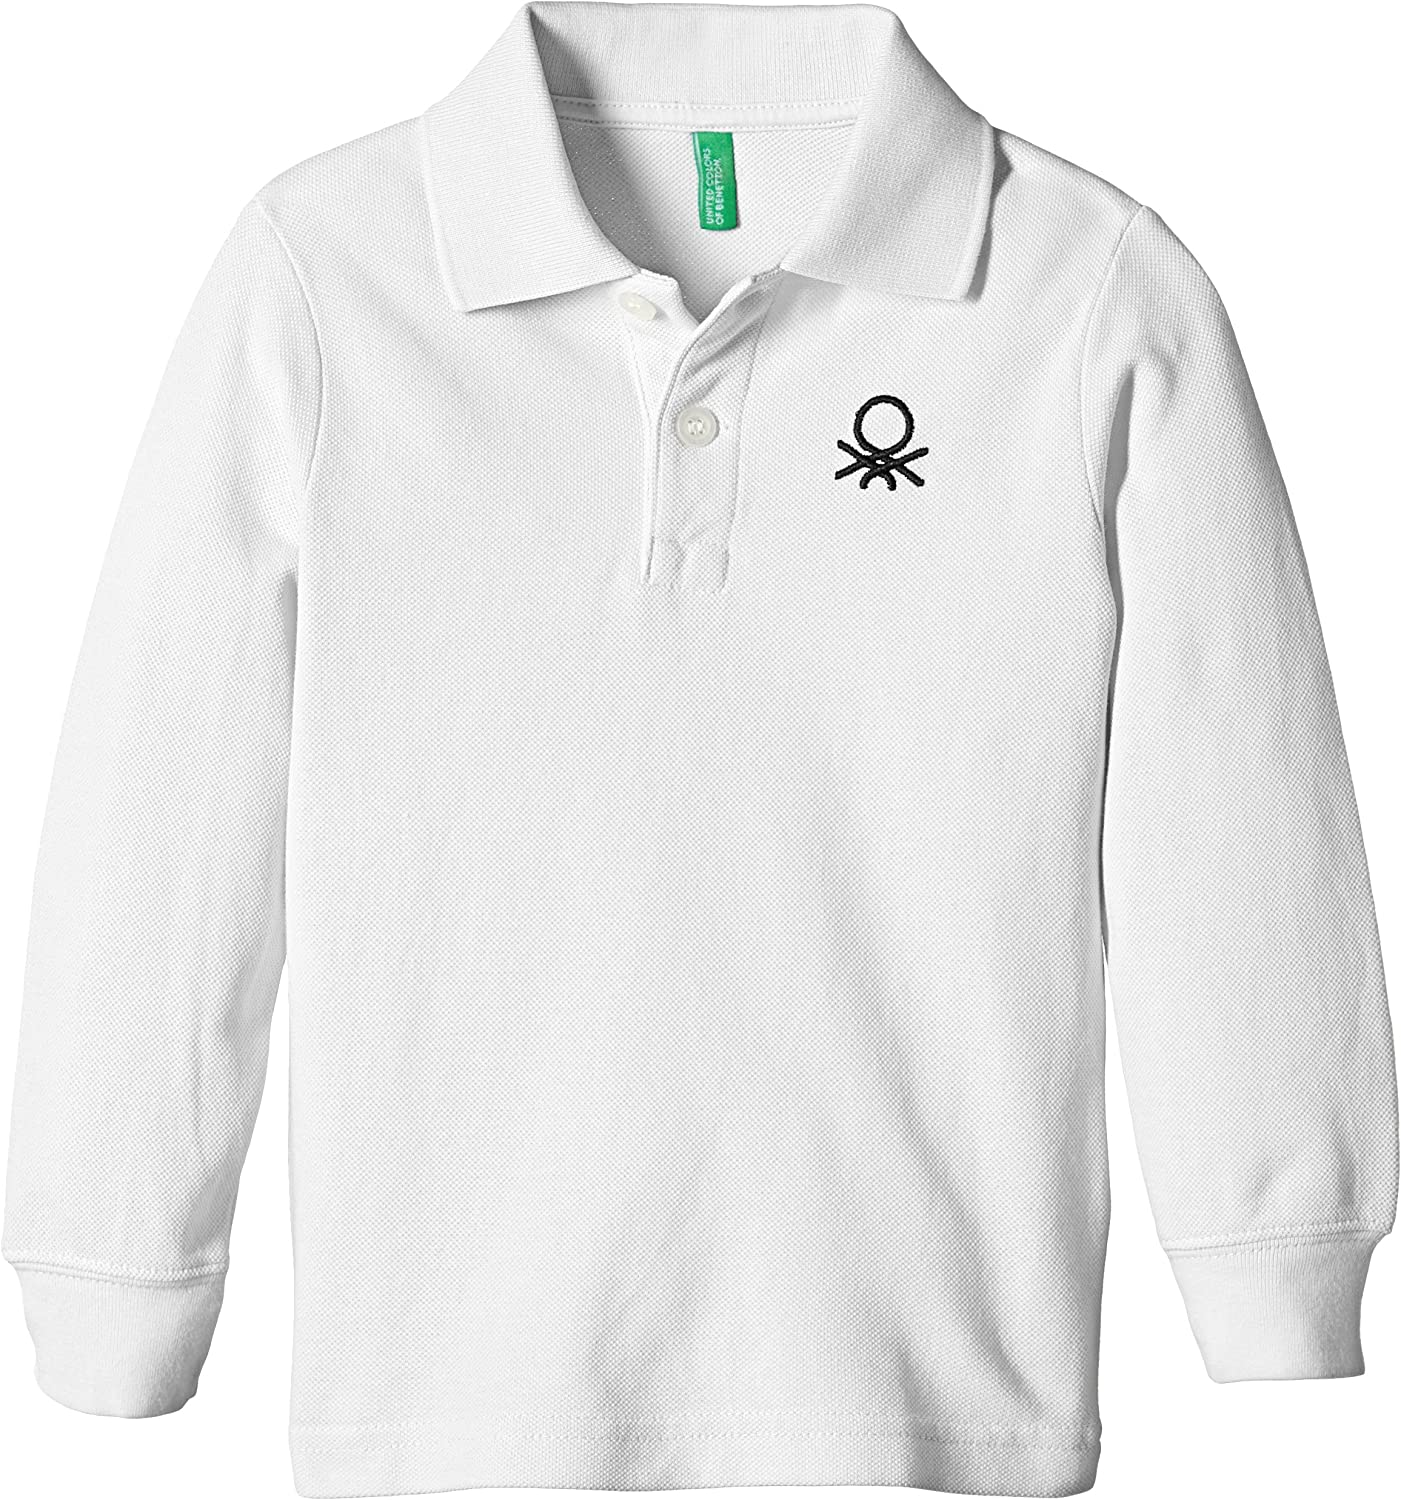 United Colors of Benetton 3089C3302 Long Slv Polo, Blanco, 12-18 ...